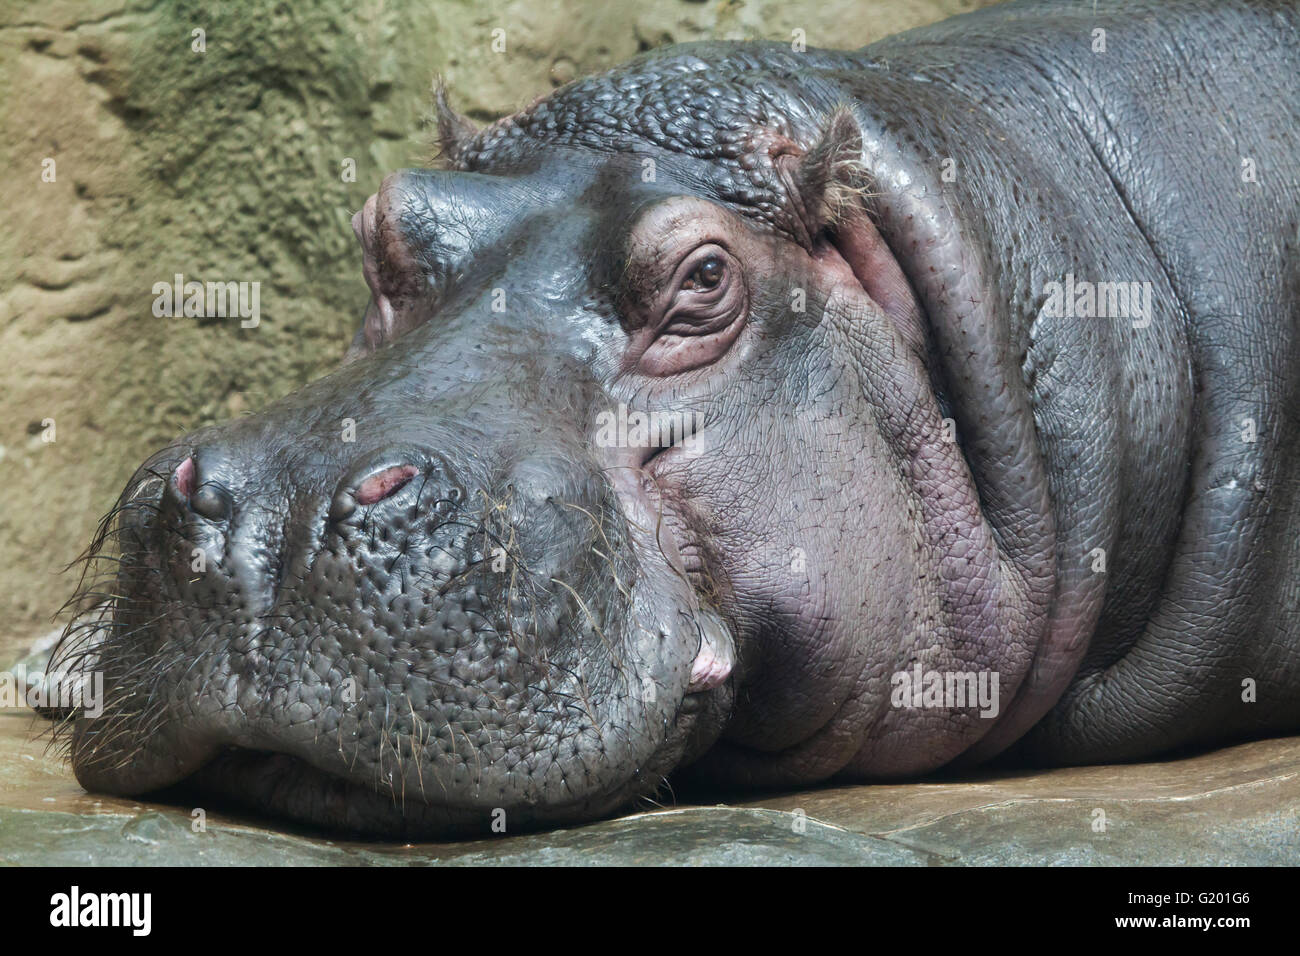 Hippopotamus (Hippopotamus amphibius) at Prague Zoo, Czech Republic. - Stock Image